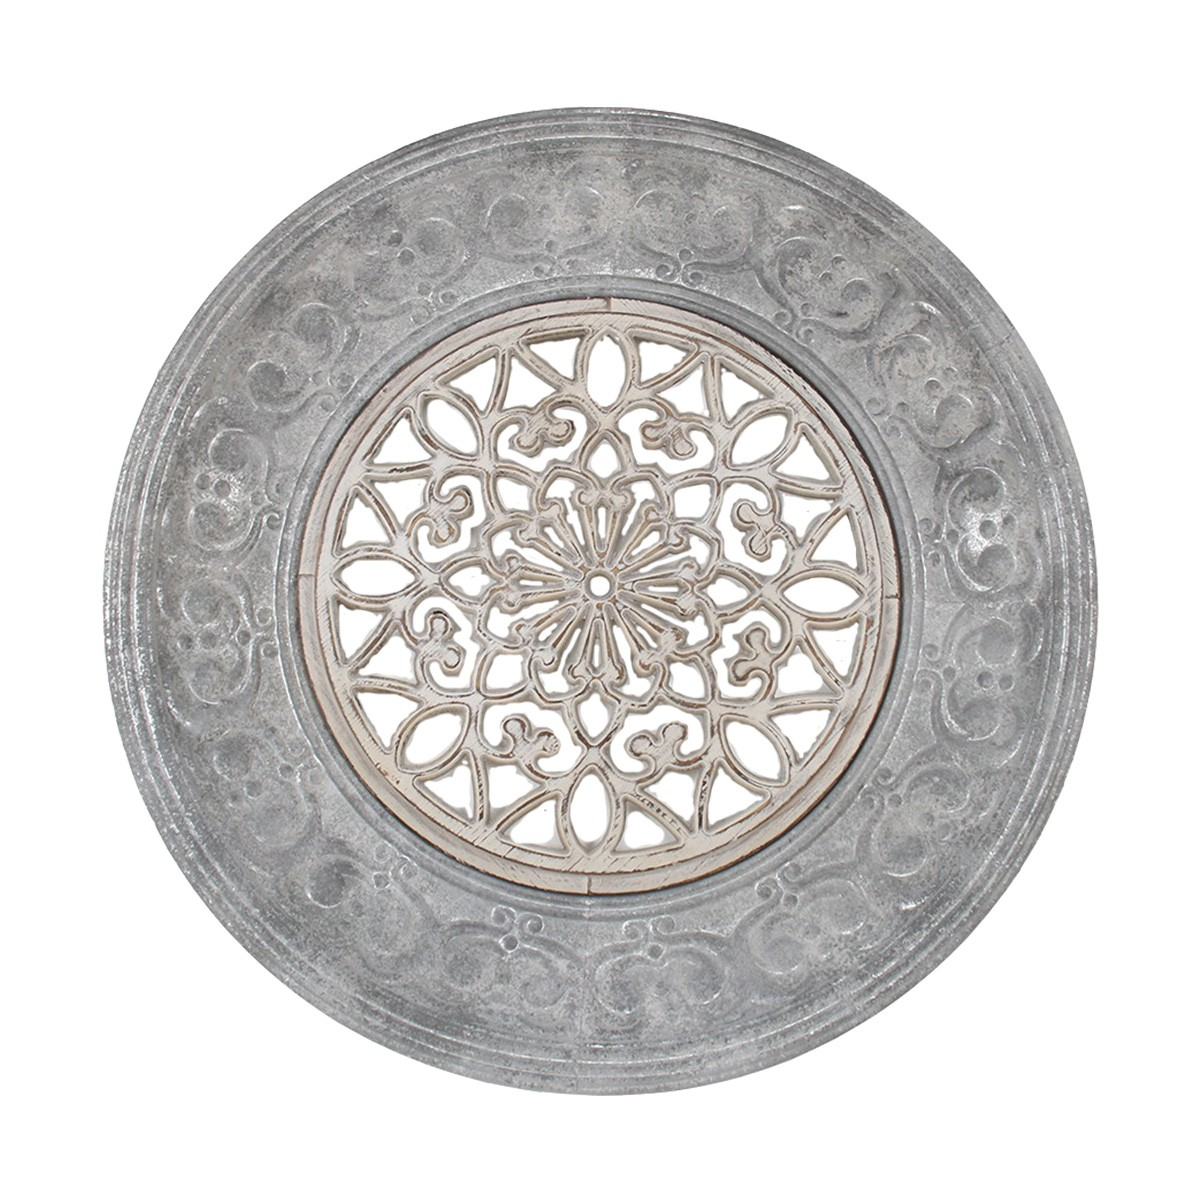 Colleoli Circolo Round Wall Art, 100cm